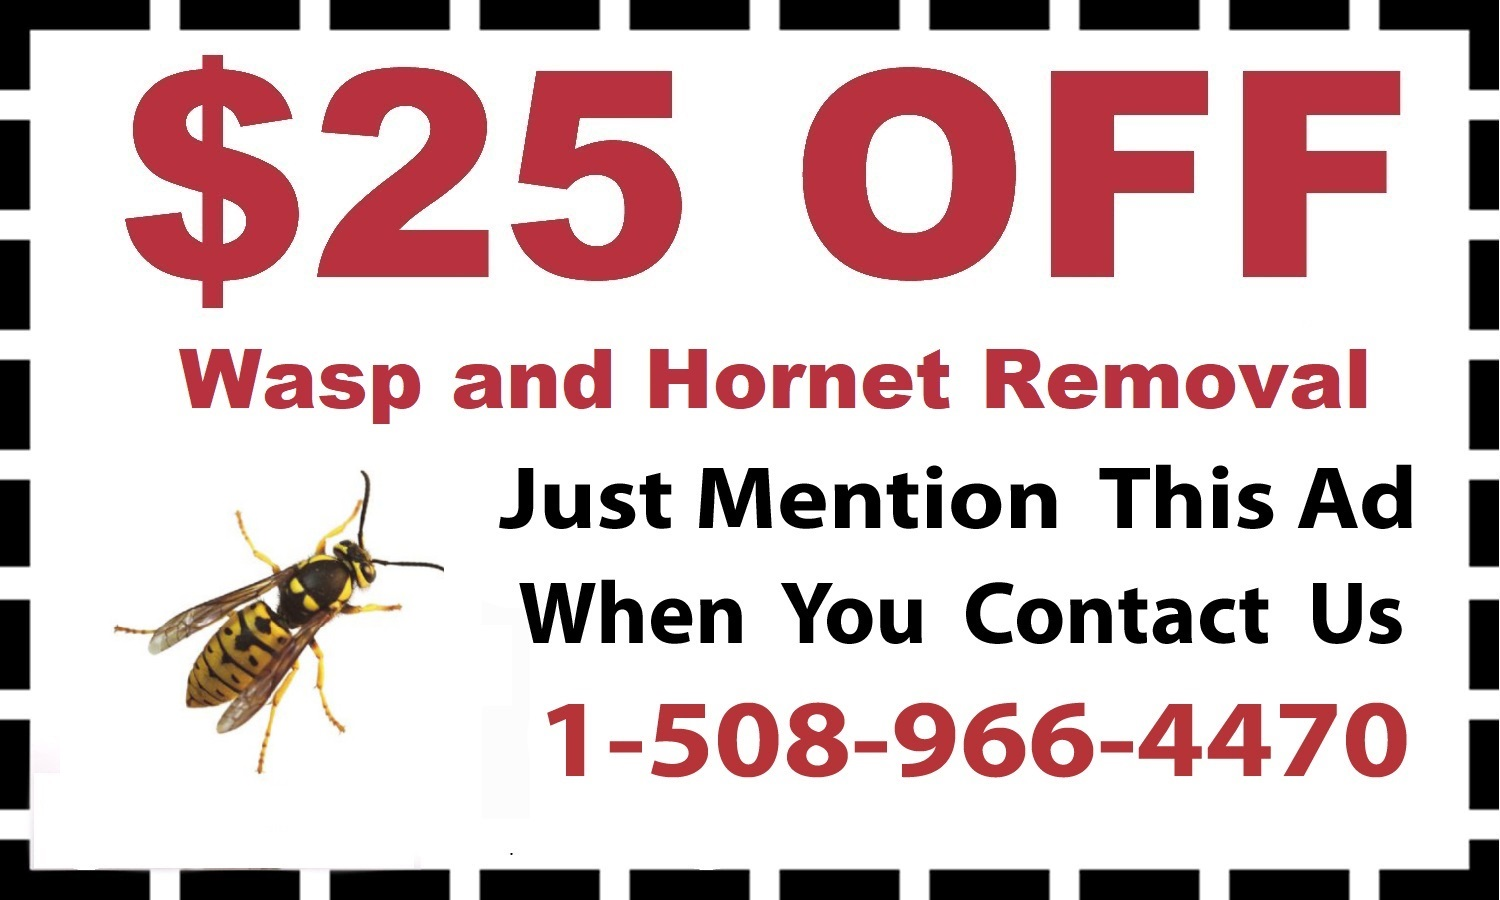 Bees Removal Service in Framingham MA